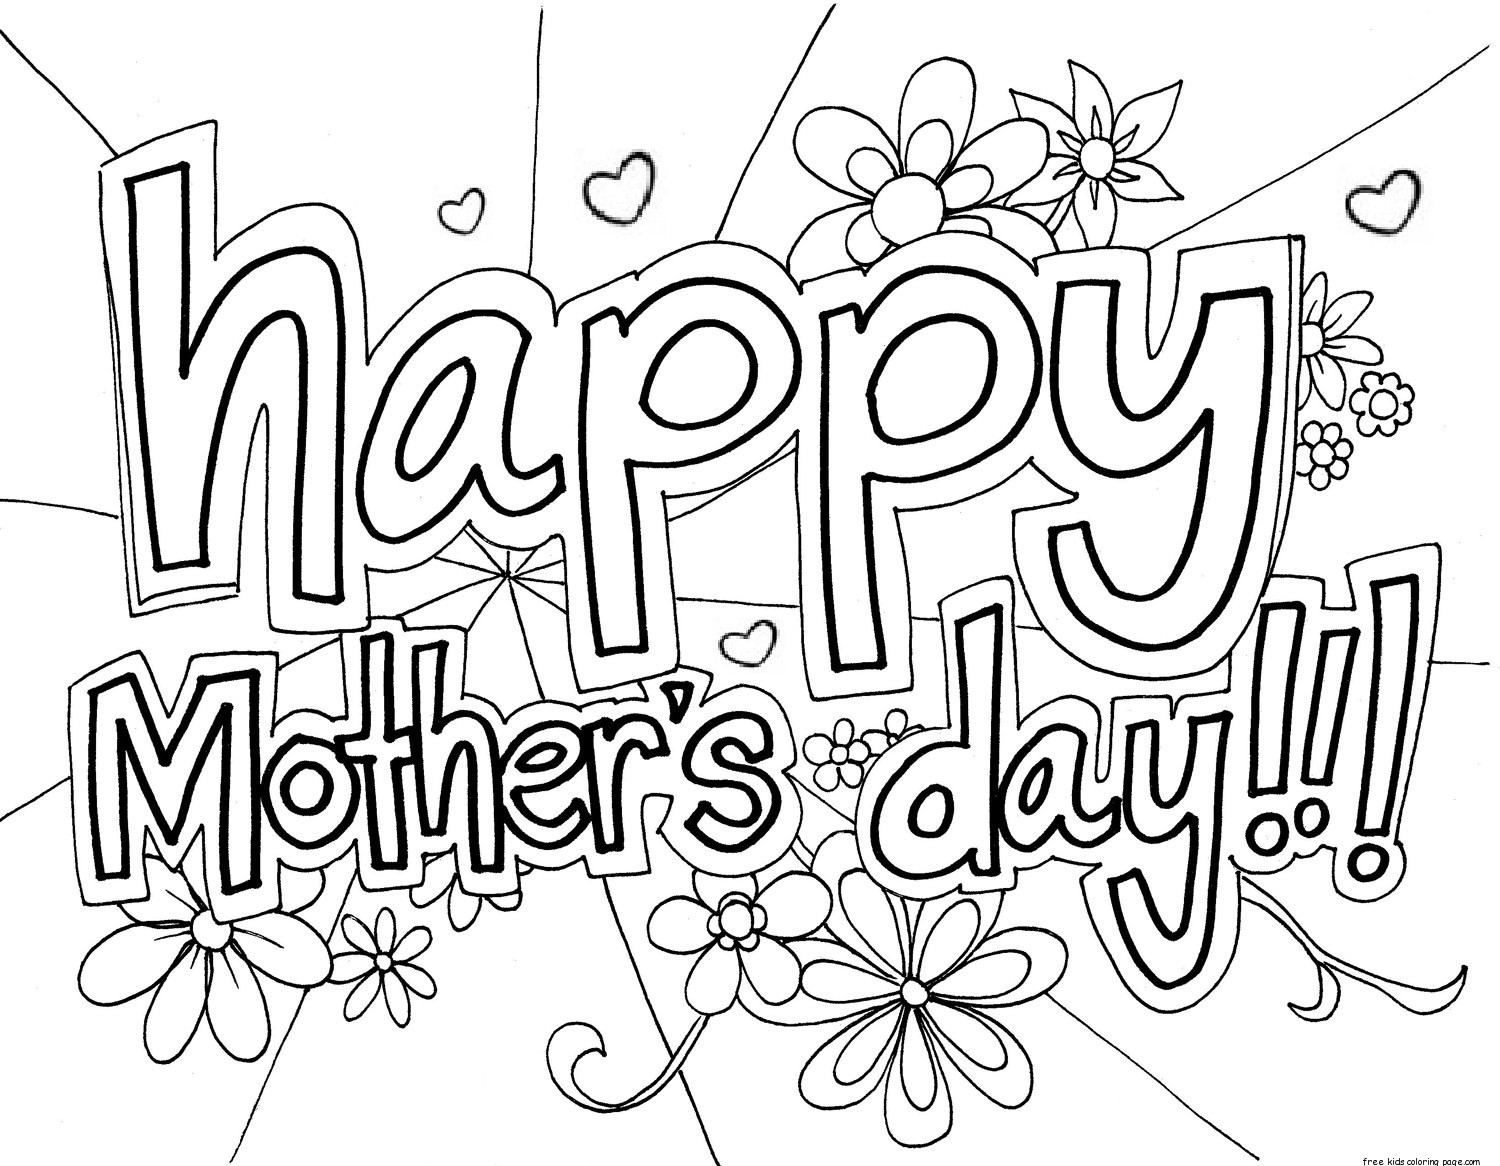 hight resolution of 1500x1166 png mothers day clipart images black and white free download